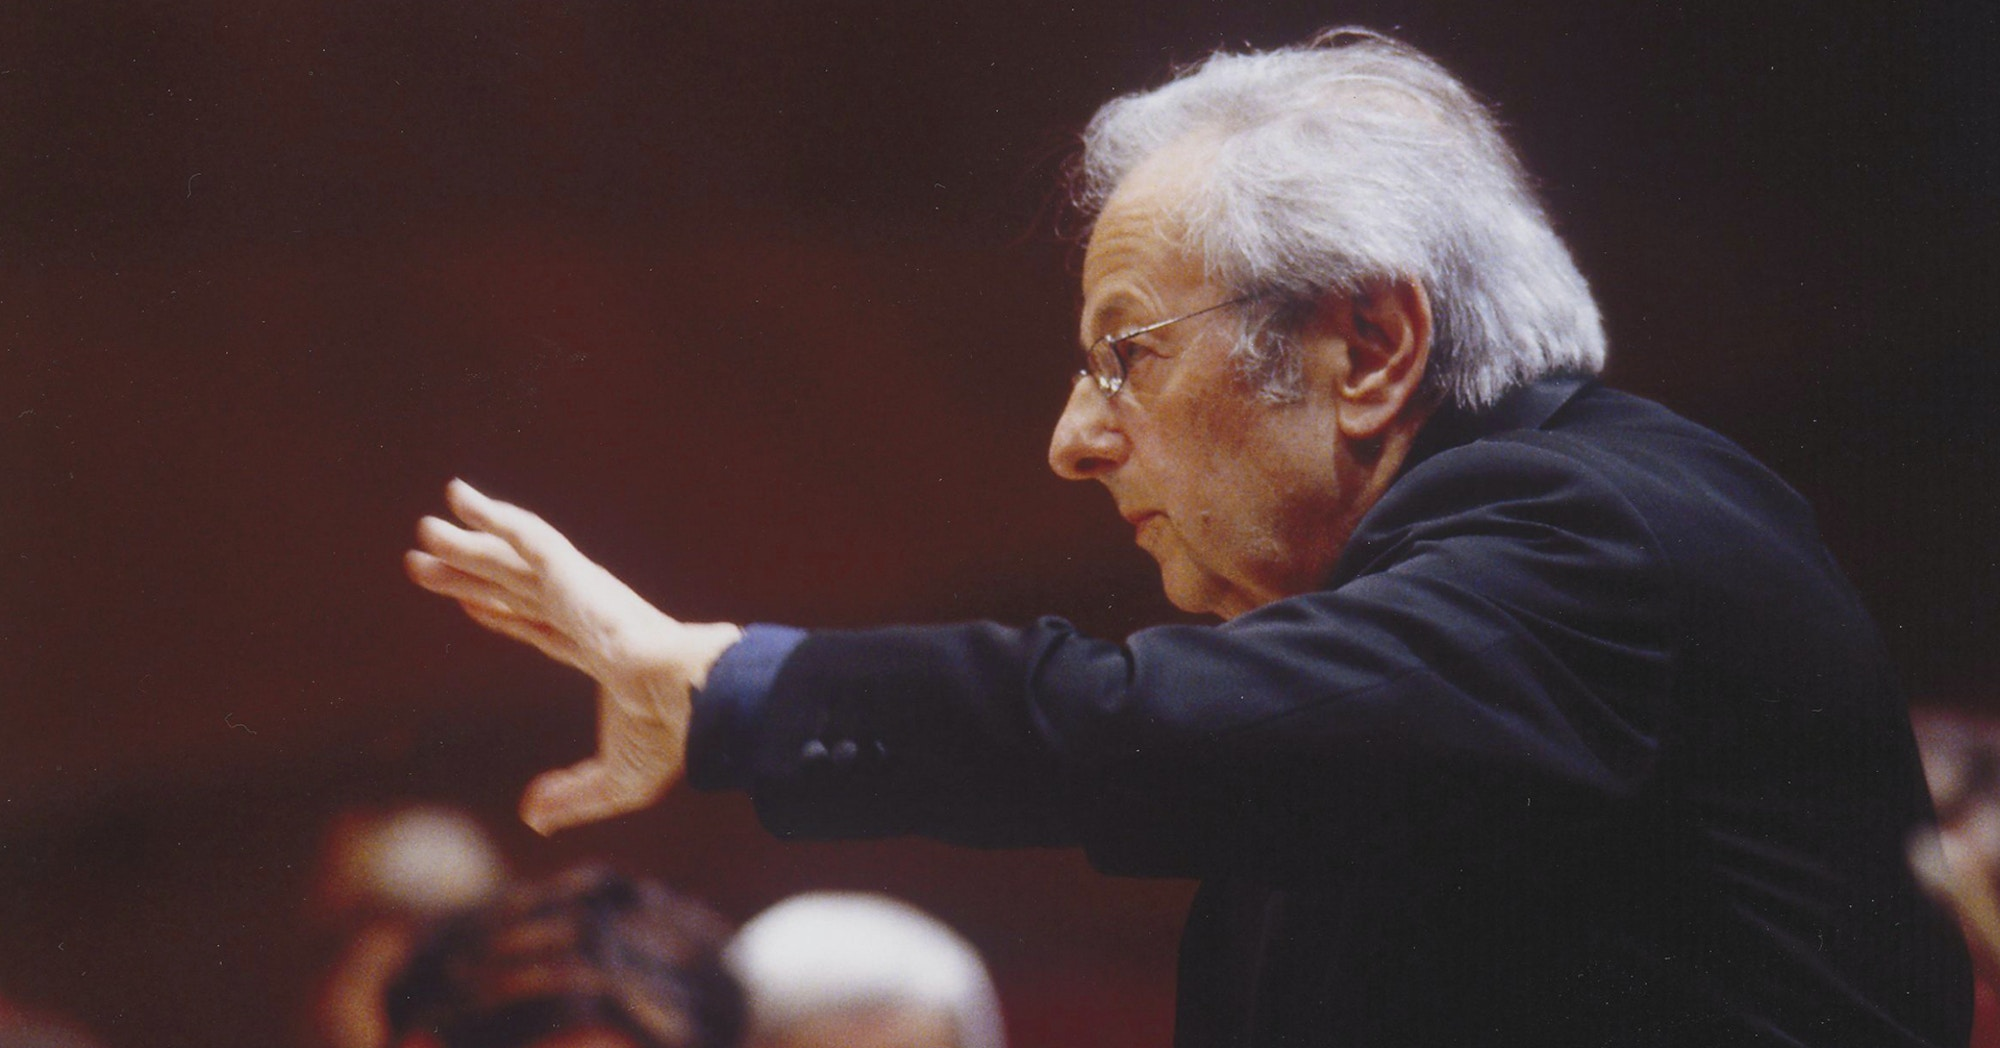 Conductor André Previn